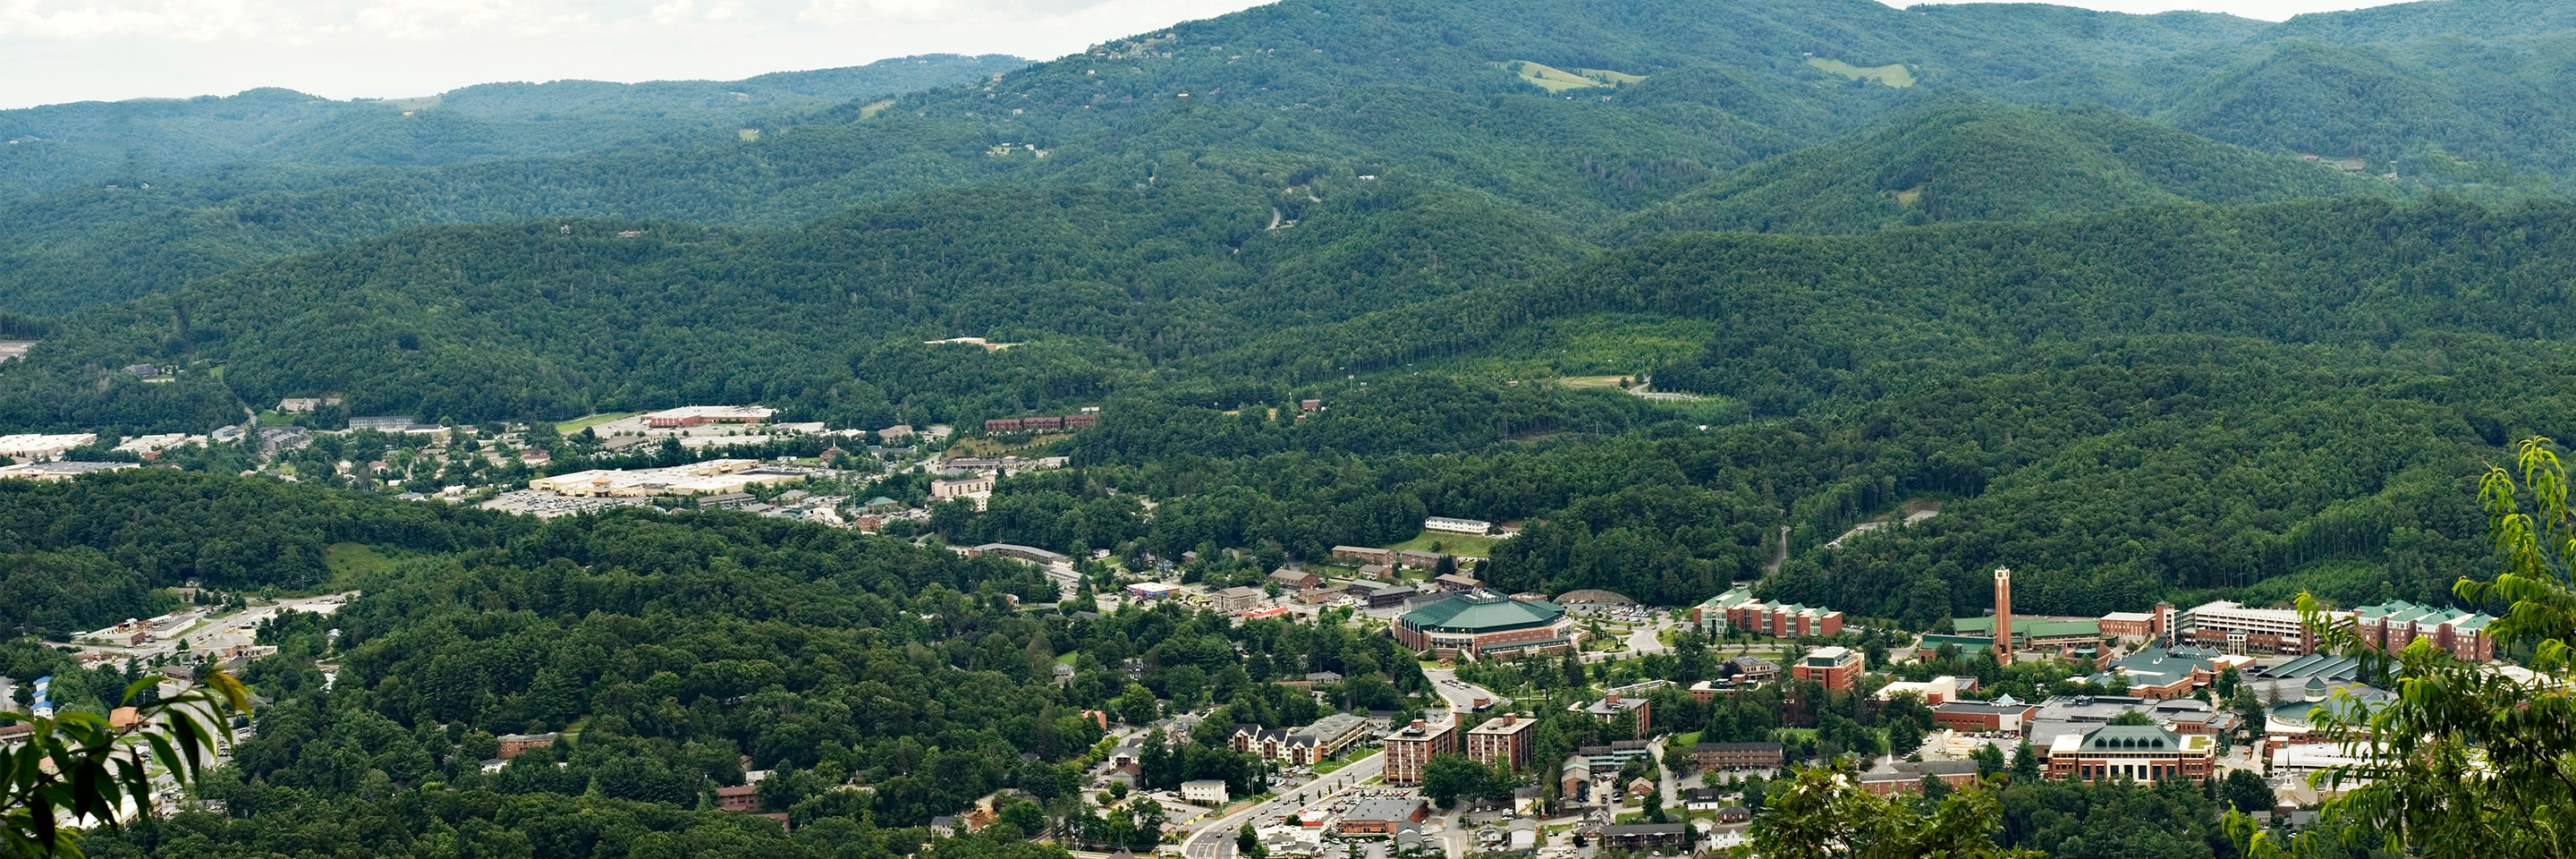 Hotels in Boone